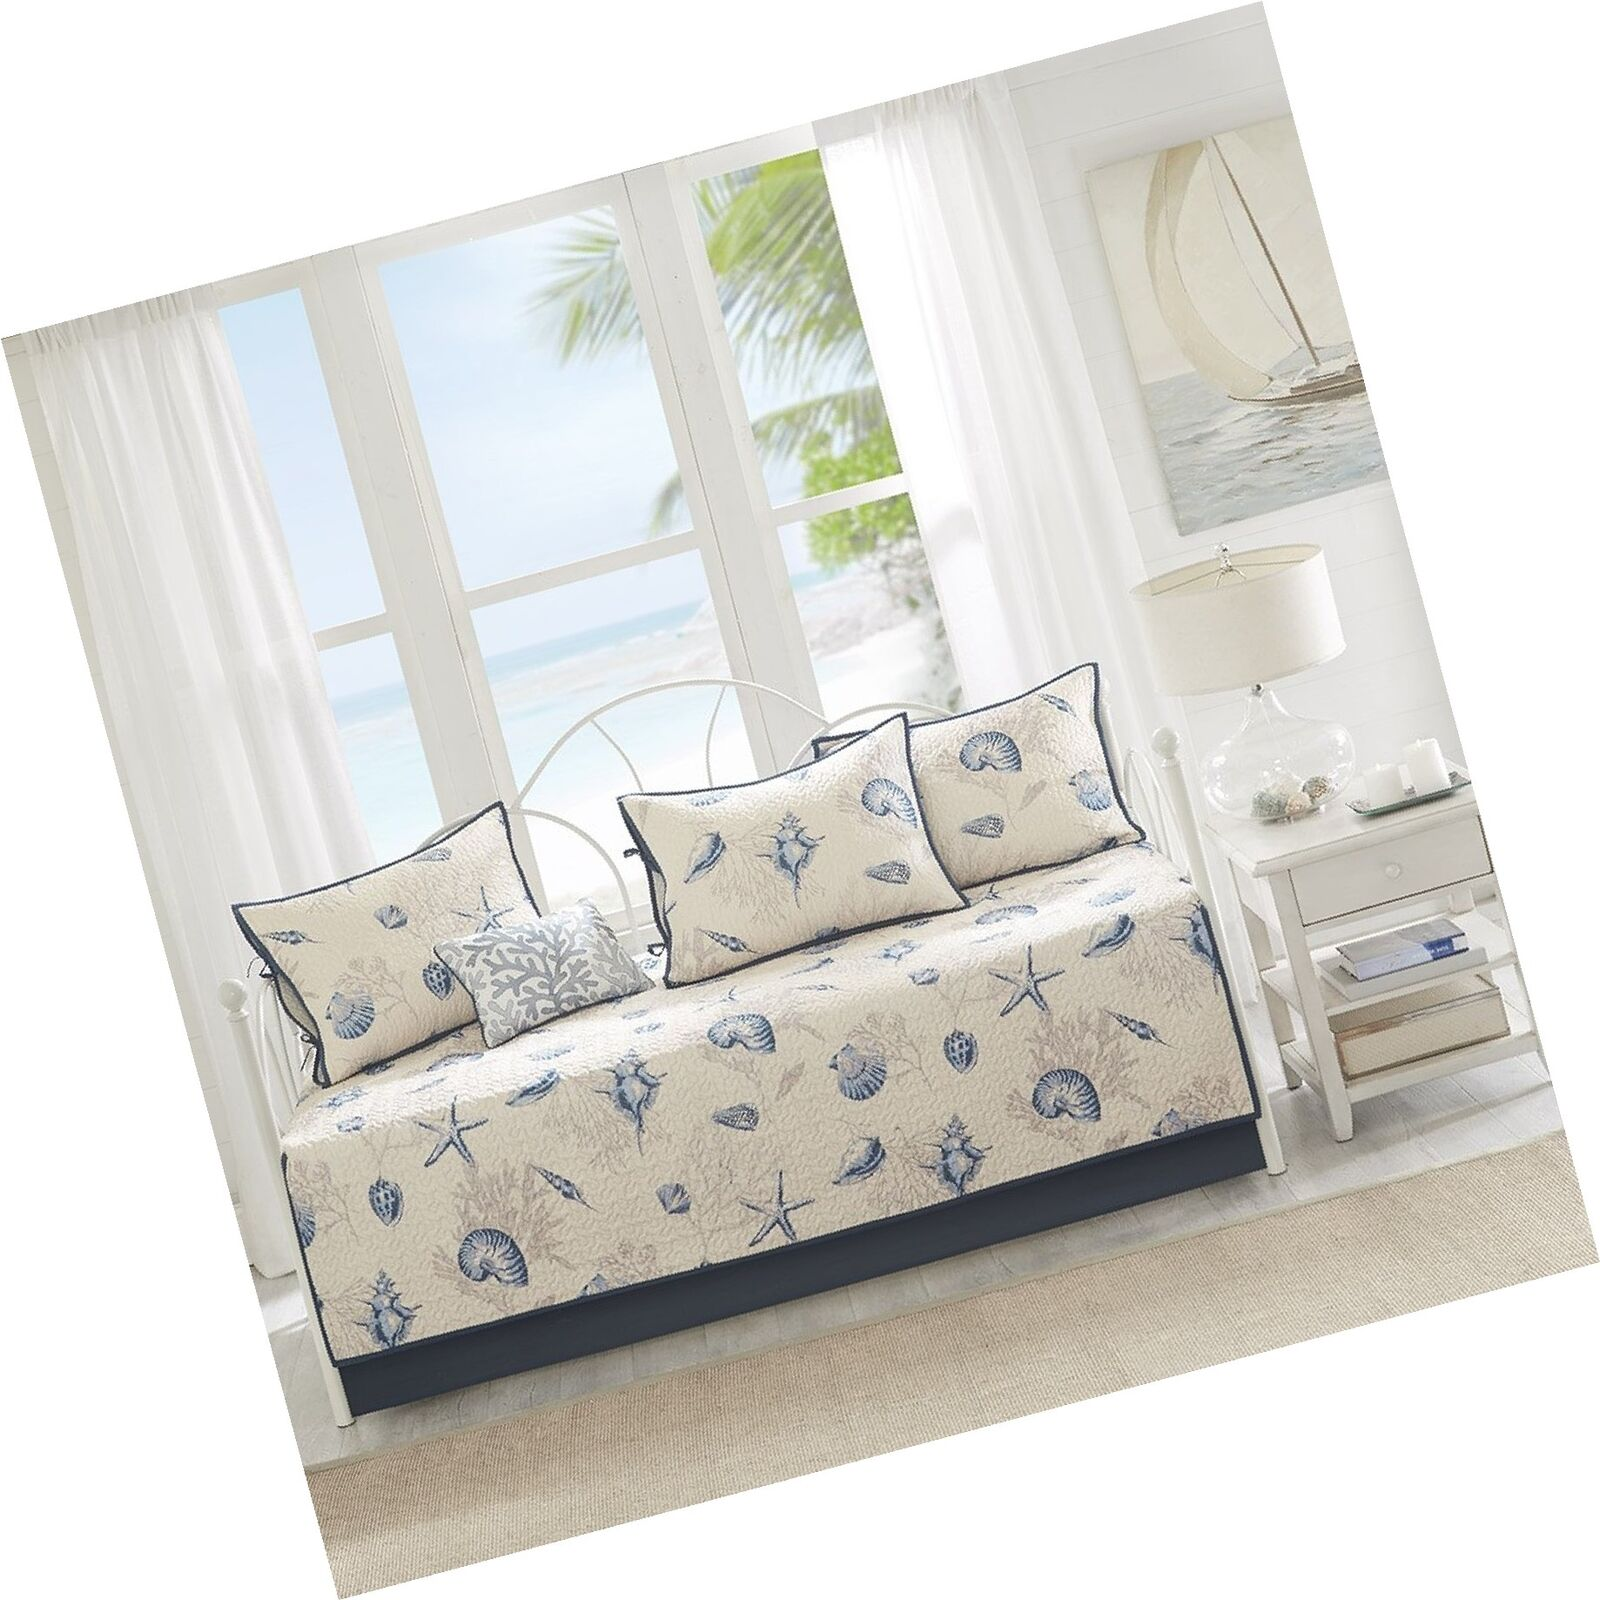 Madison Park Bayside Daybed Size Quilt Bedding Set - blueeee, Khaki, Seashells –...